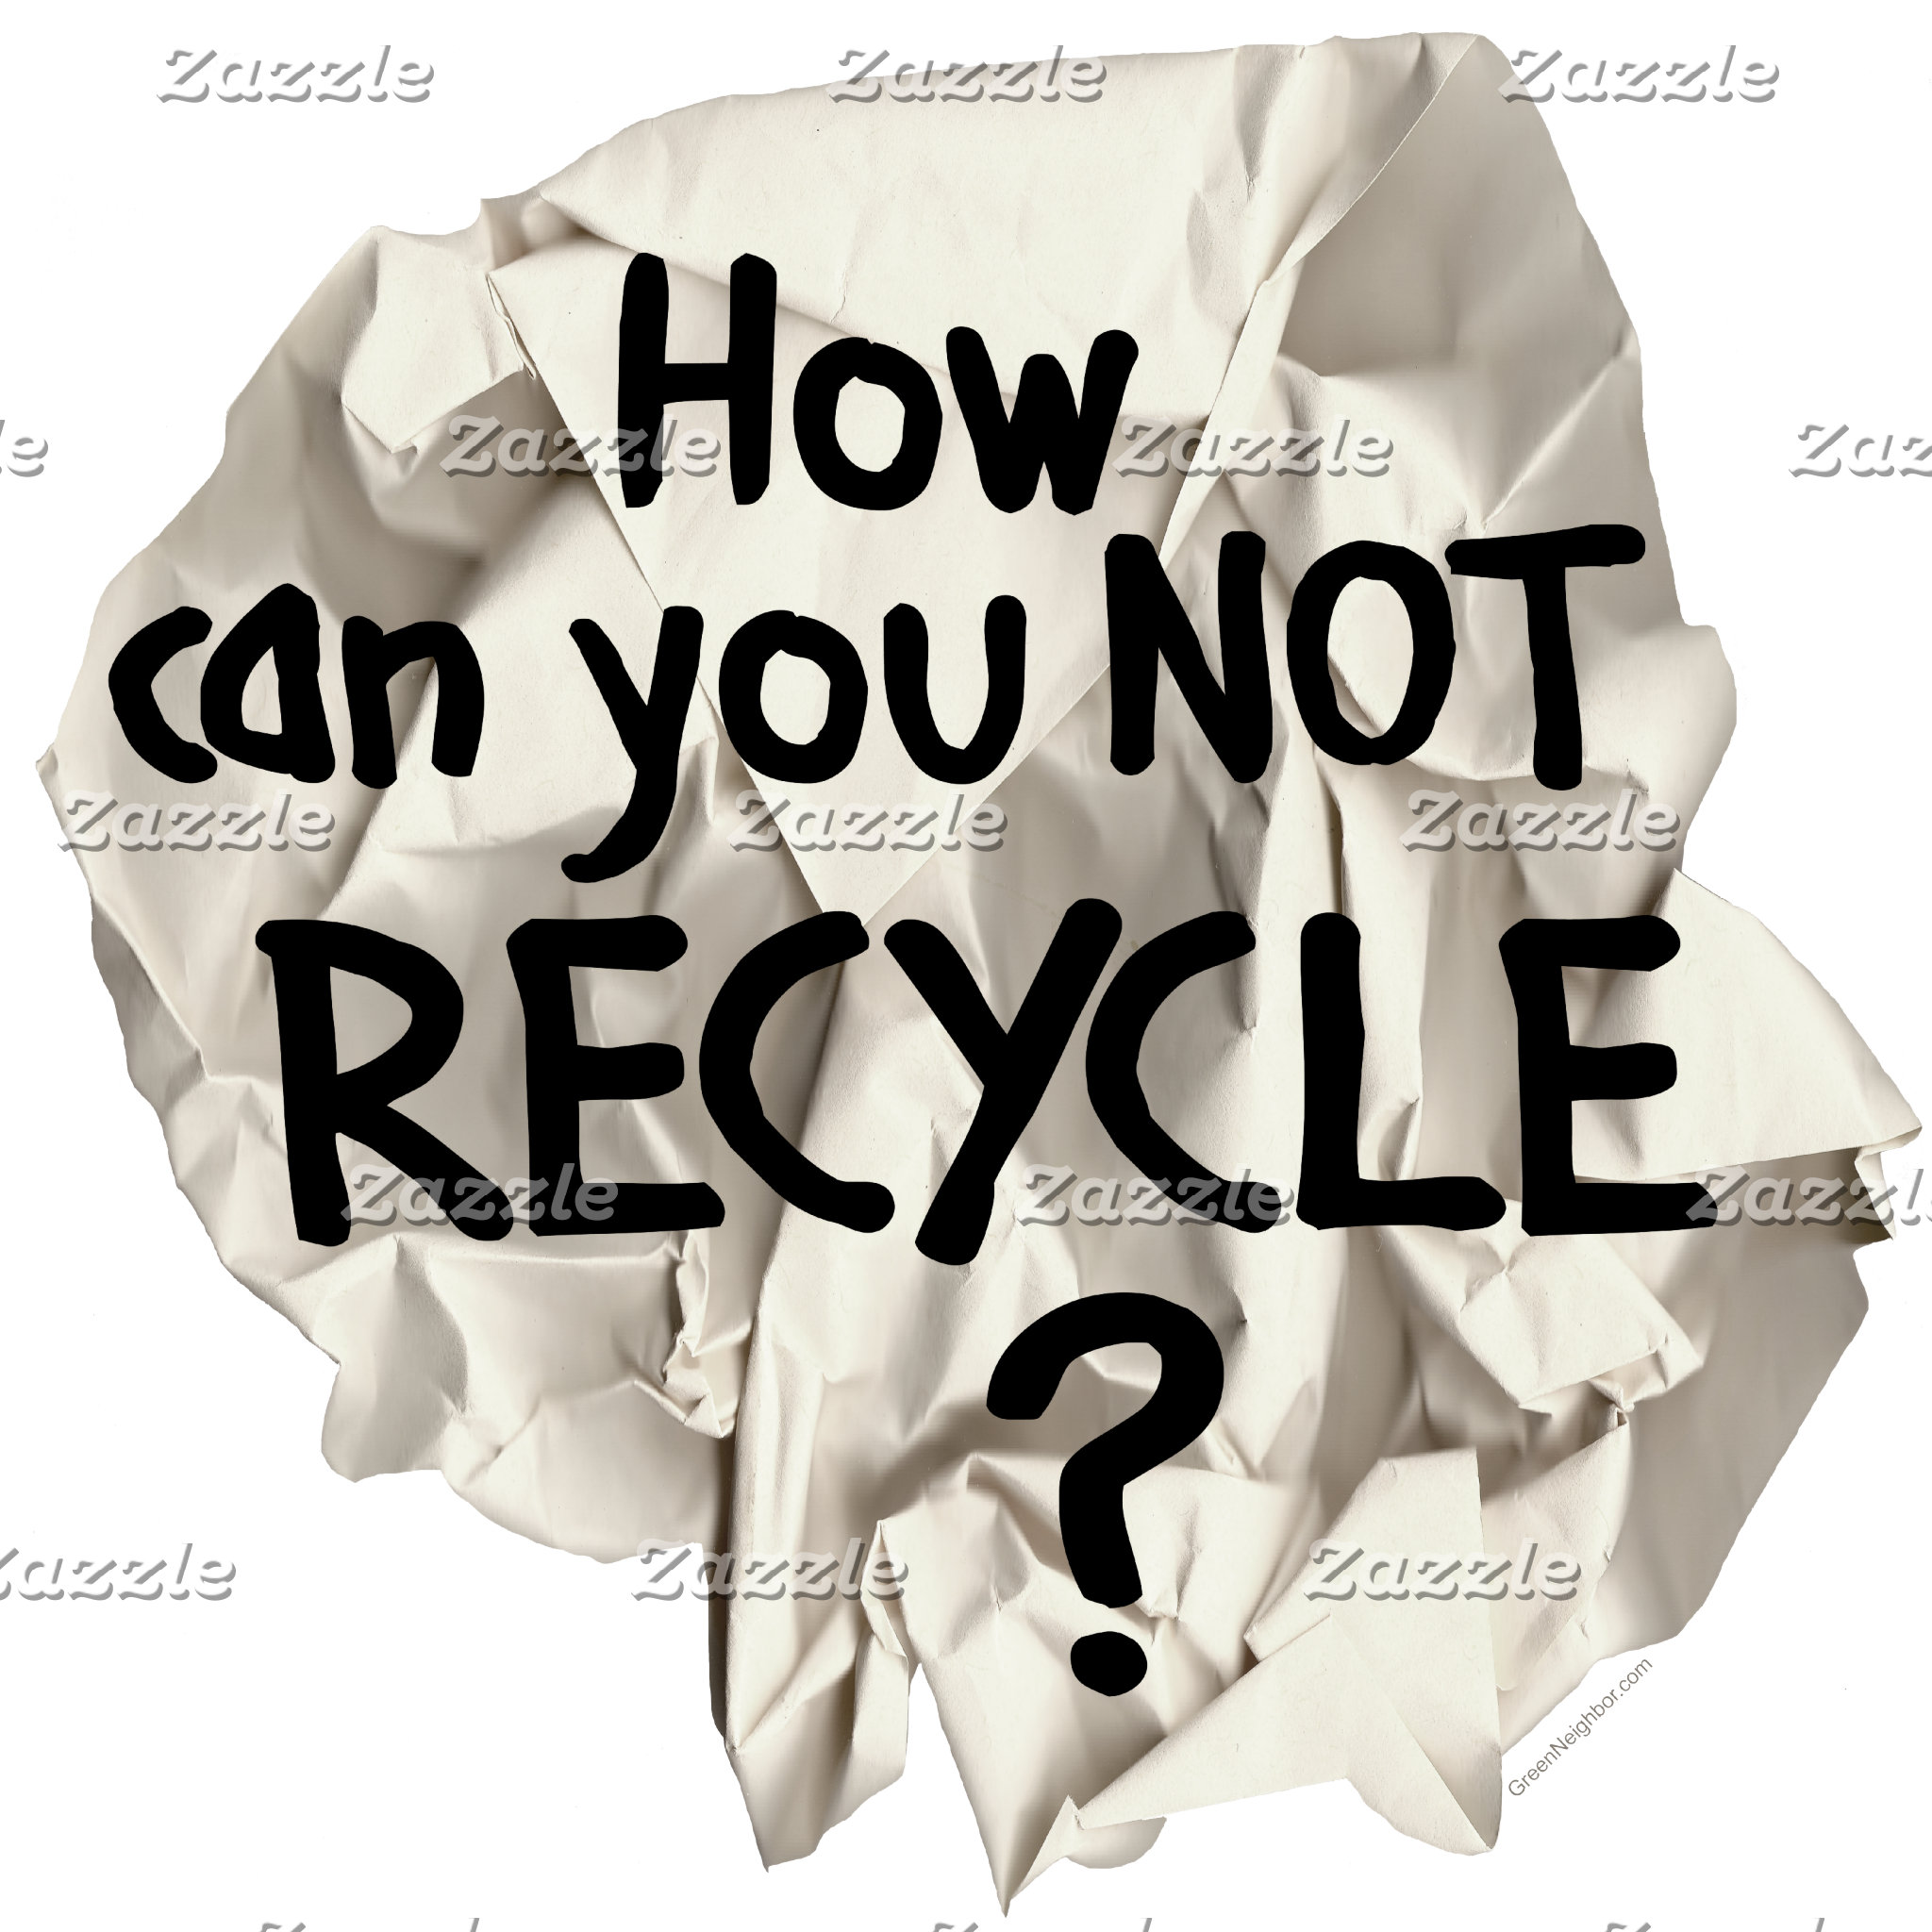 Not Recycle?